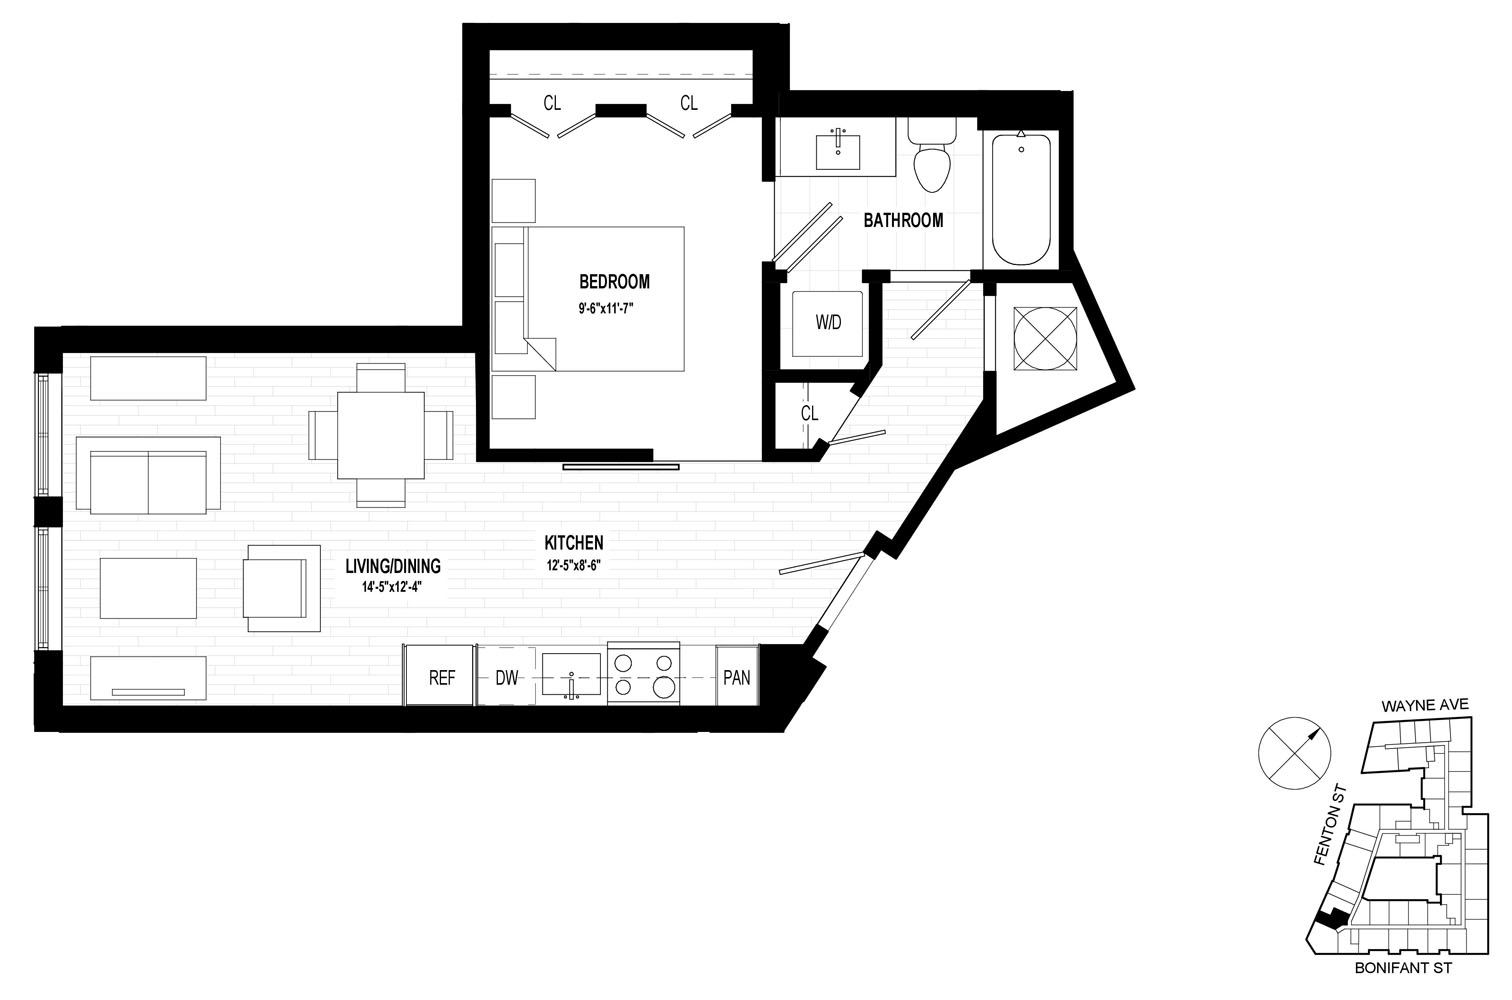 P0578887 761aa04 central a11 598 2 floorplan